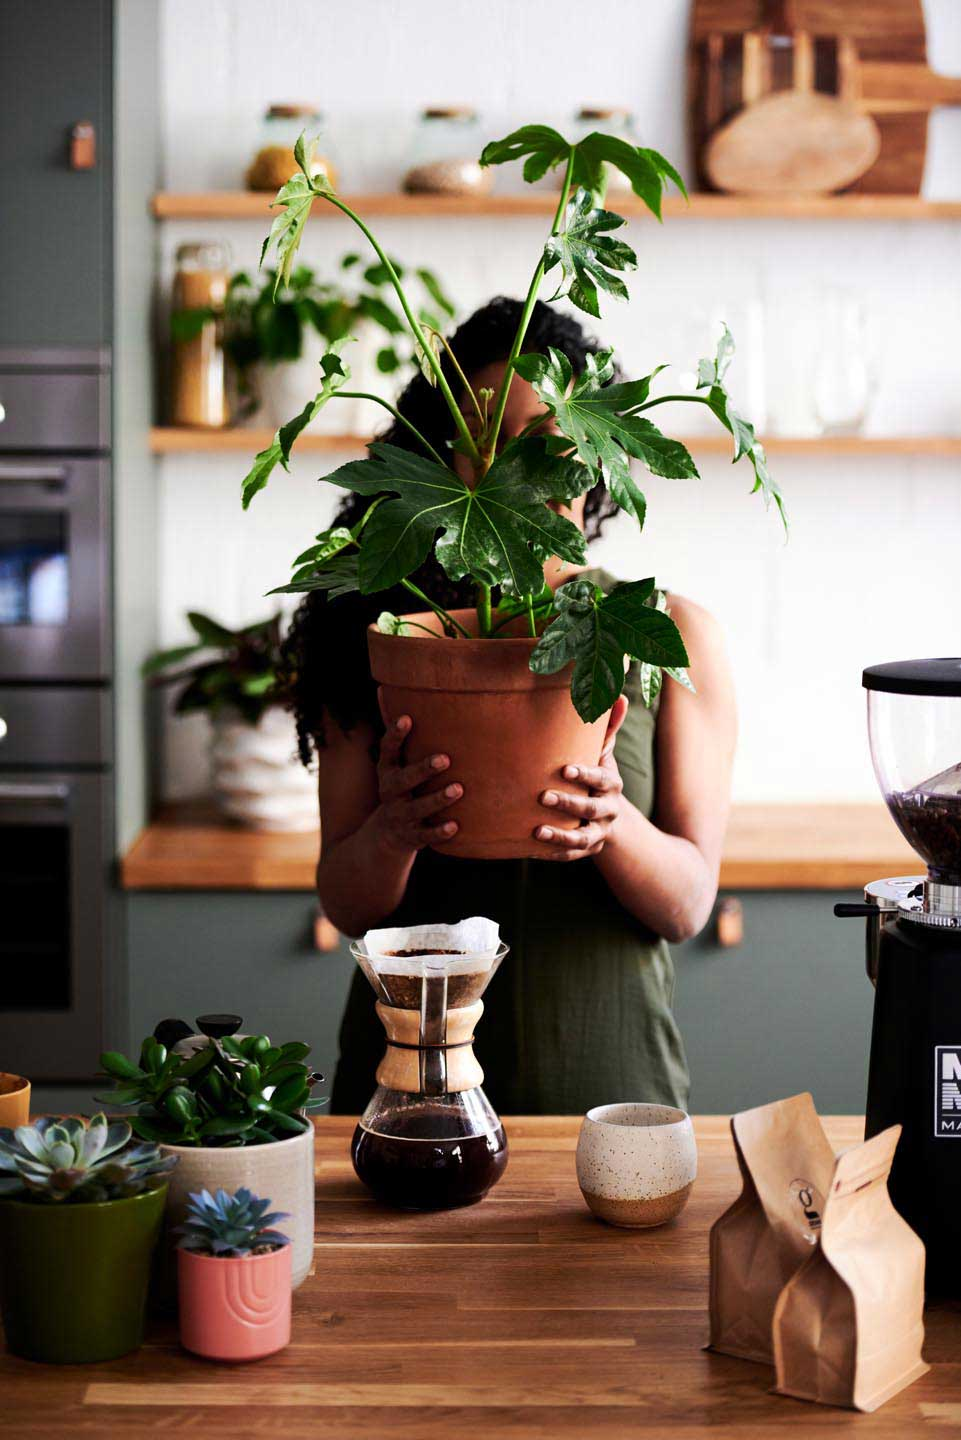 Lifestyle photography of woman holding plant - coffee in home by London photographer Del Manning